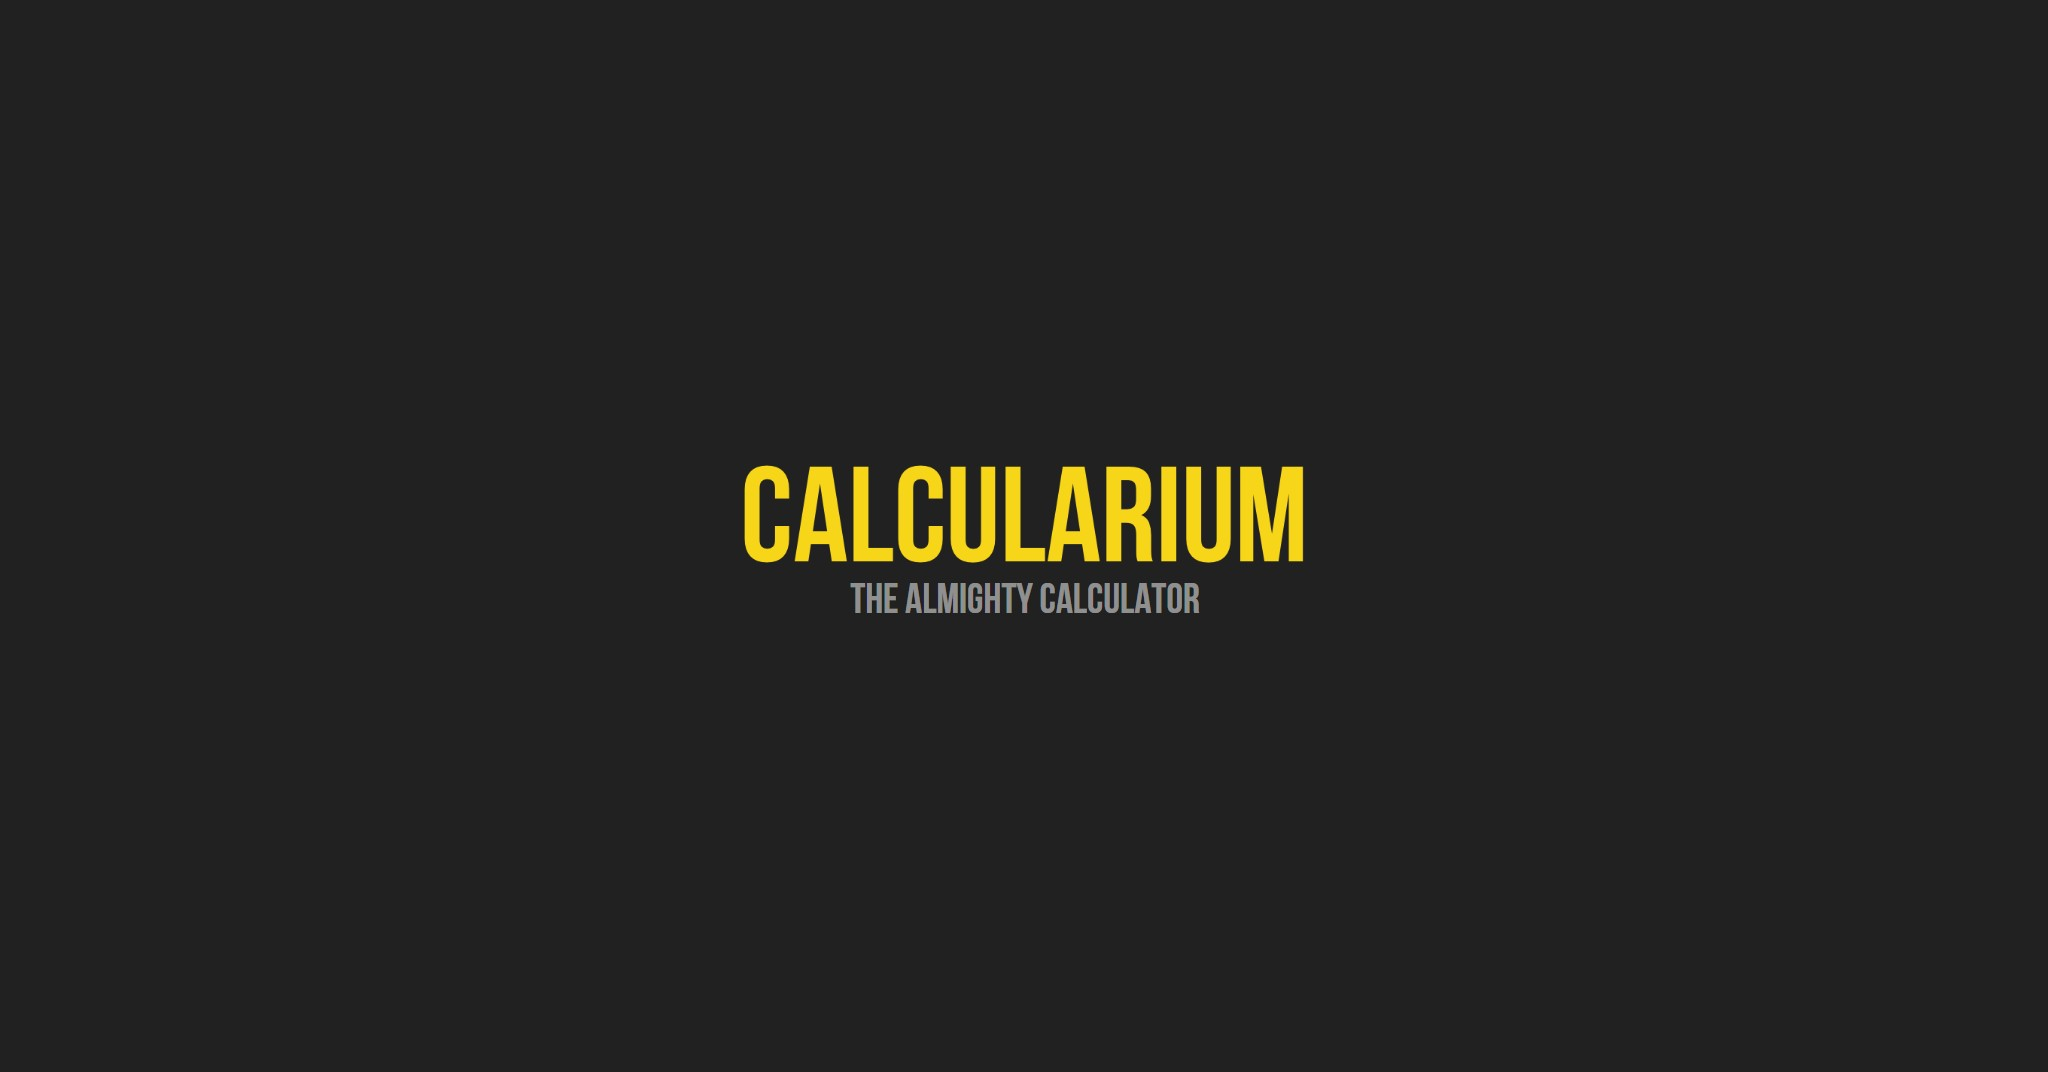 Calculairum